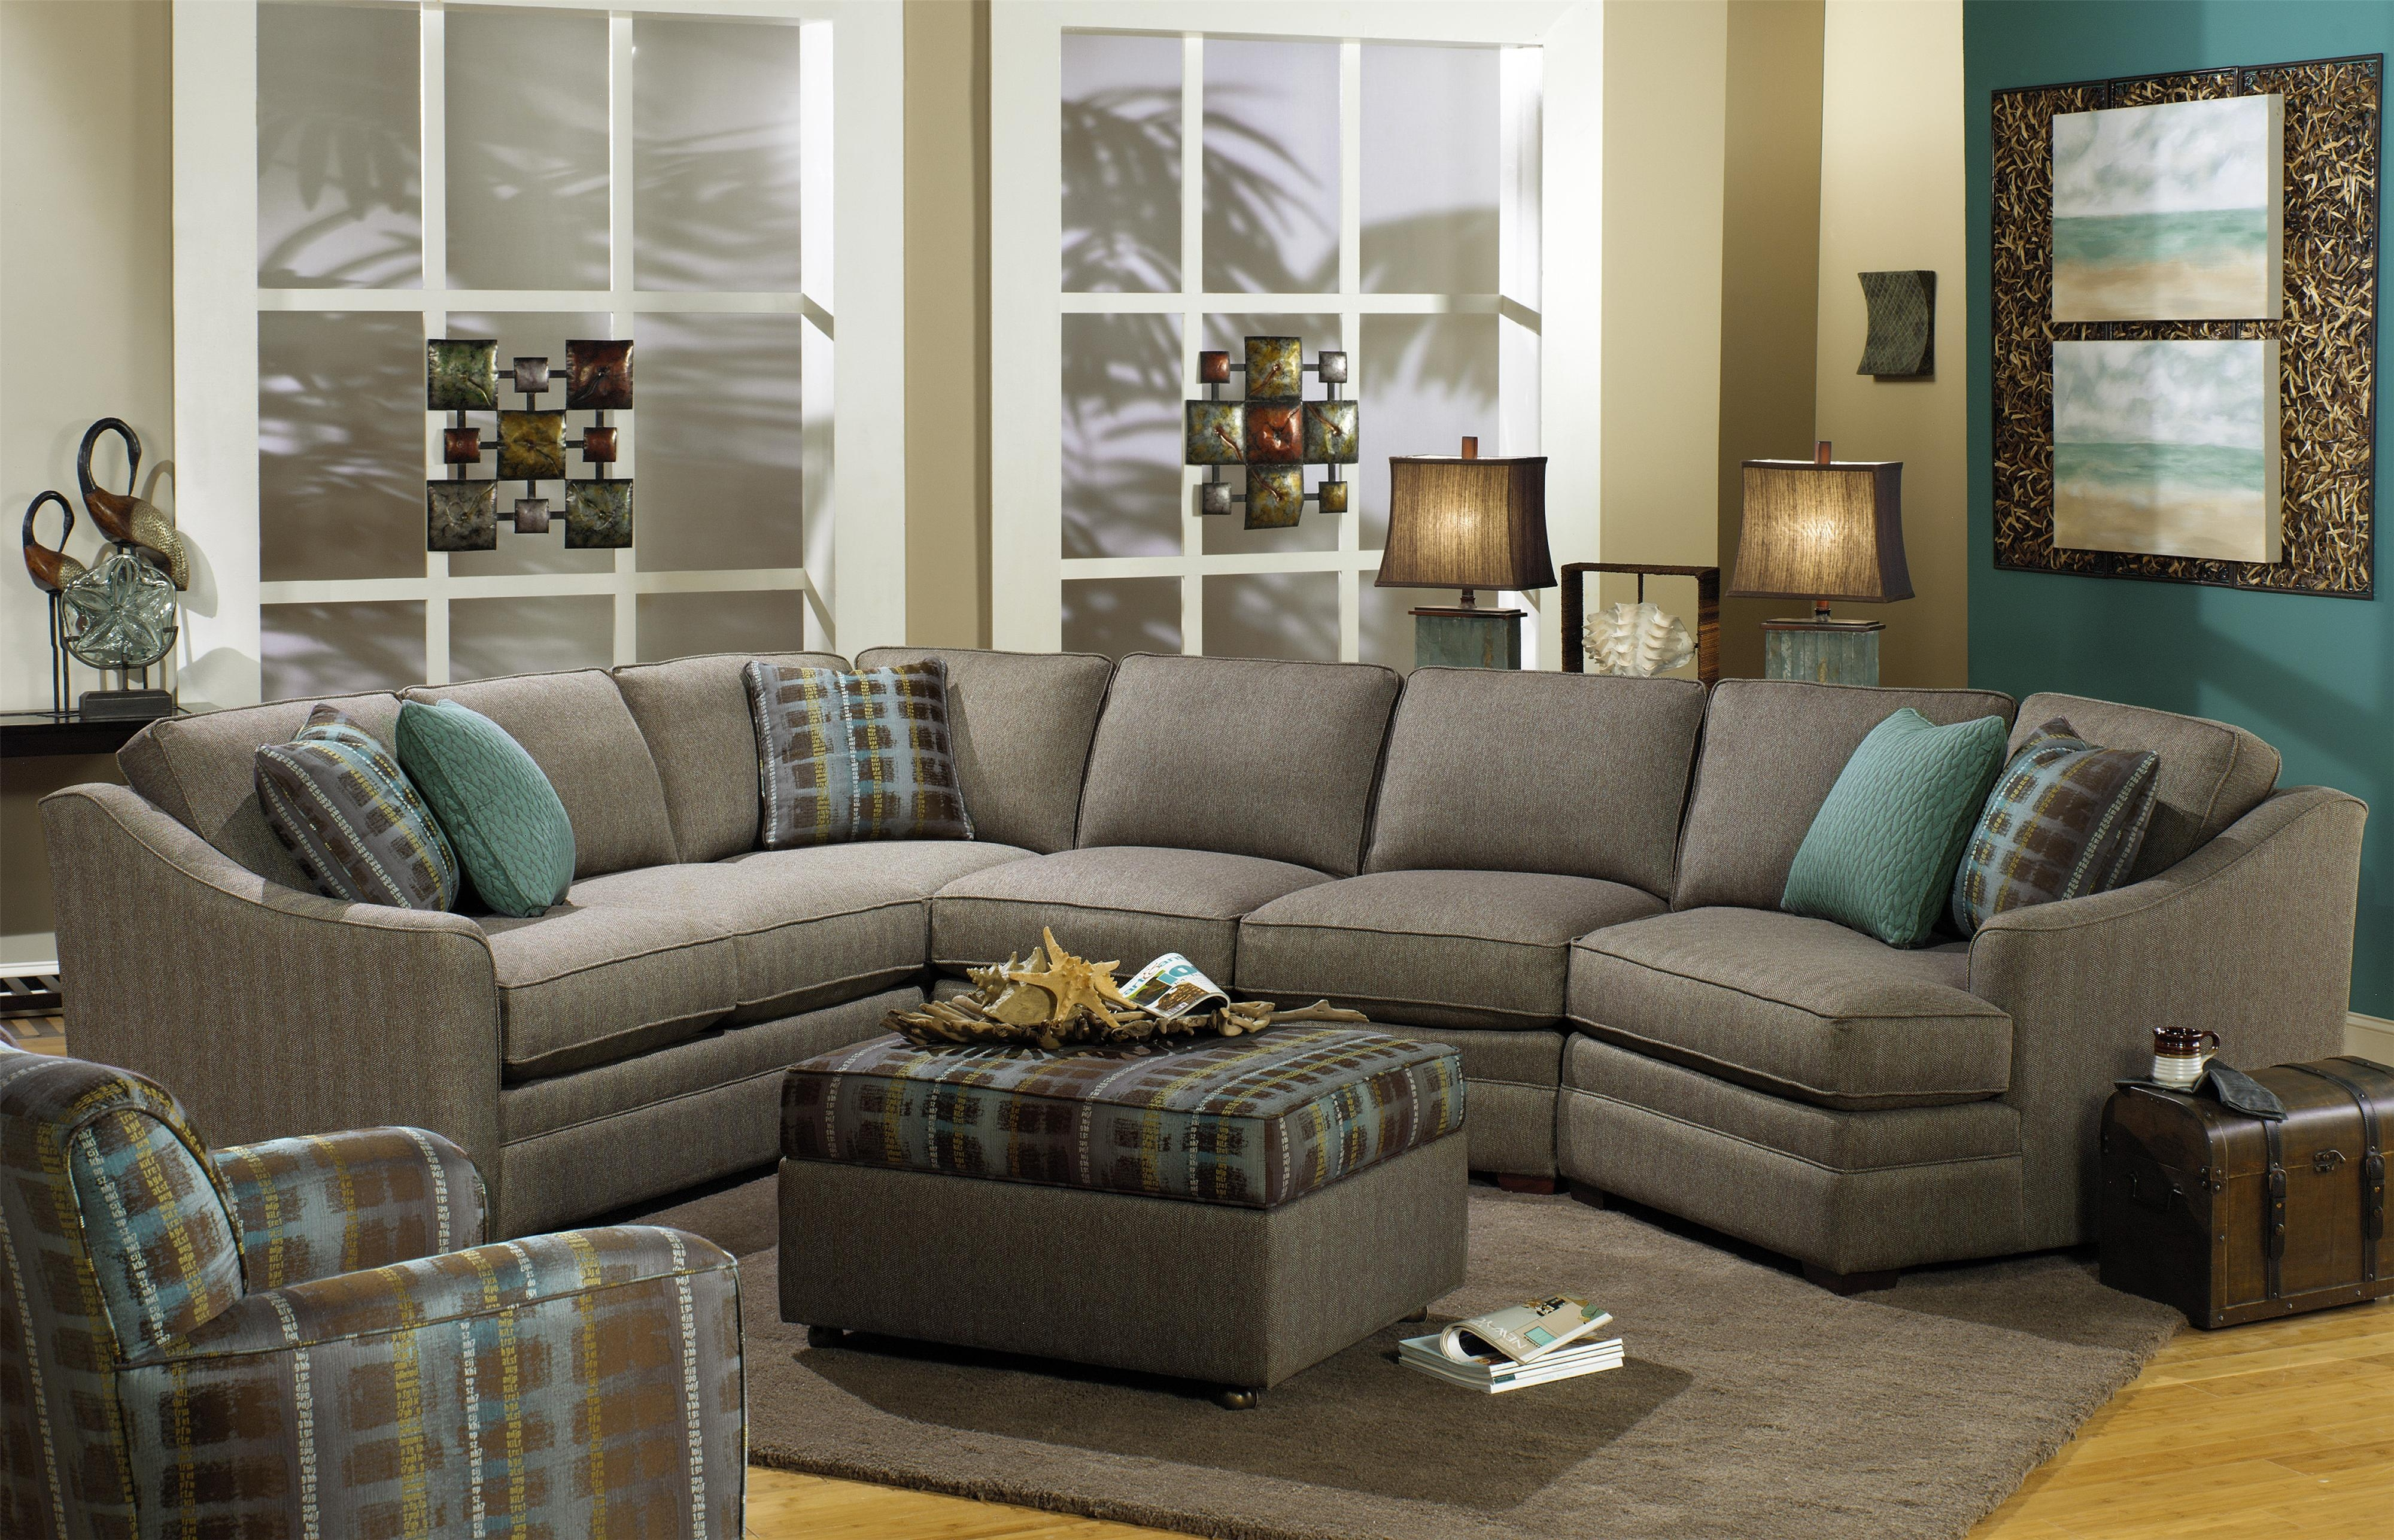 Craftmaster F9 Custom Collection Customizable 3 Piece Sectional Intended For Cuddler Sectional Sofa (Image 7 of 15)